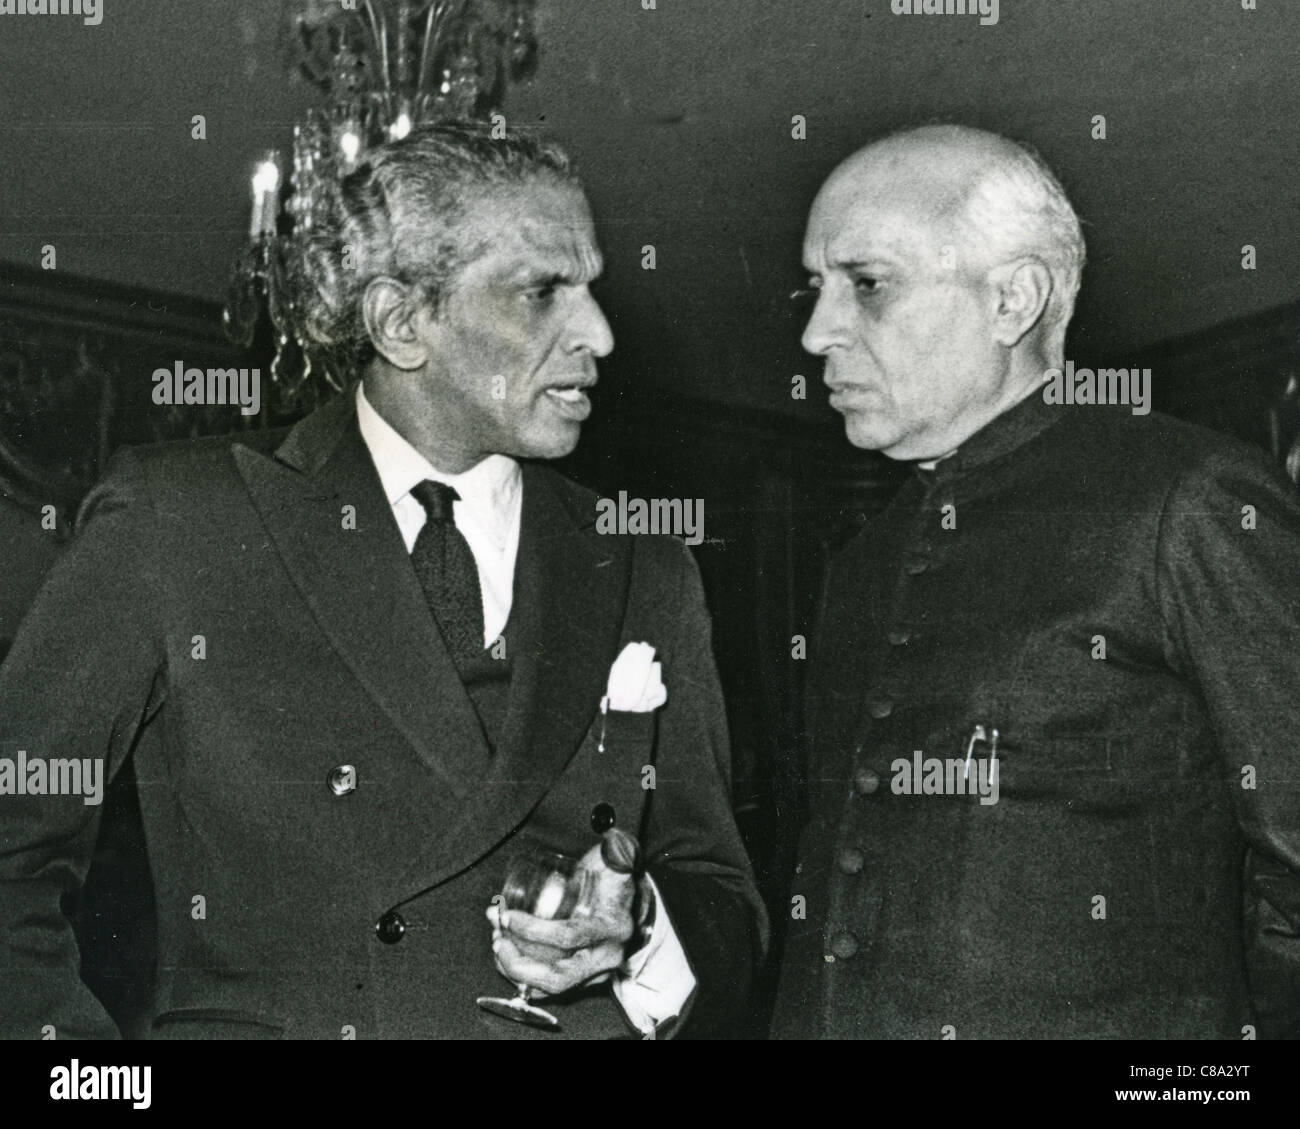 JAWAHARLAL PANDIT NEHRU  Prime Minister of India at left with Vengalil Krishna Menon about 1952 - Stock Image